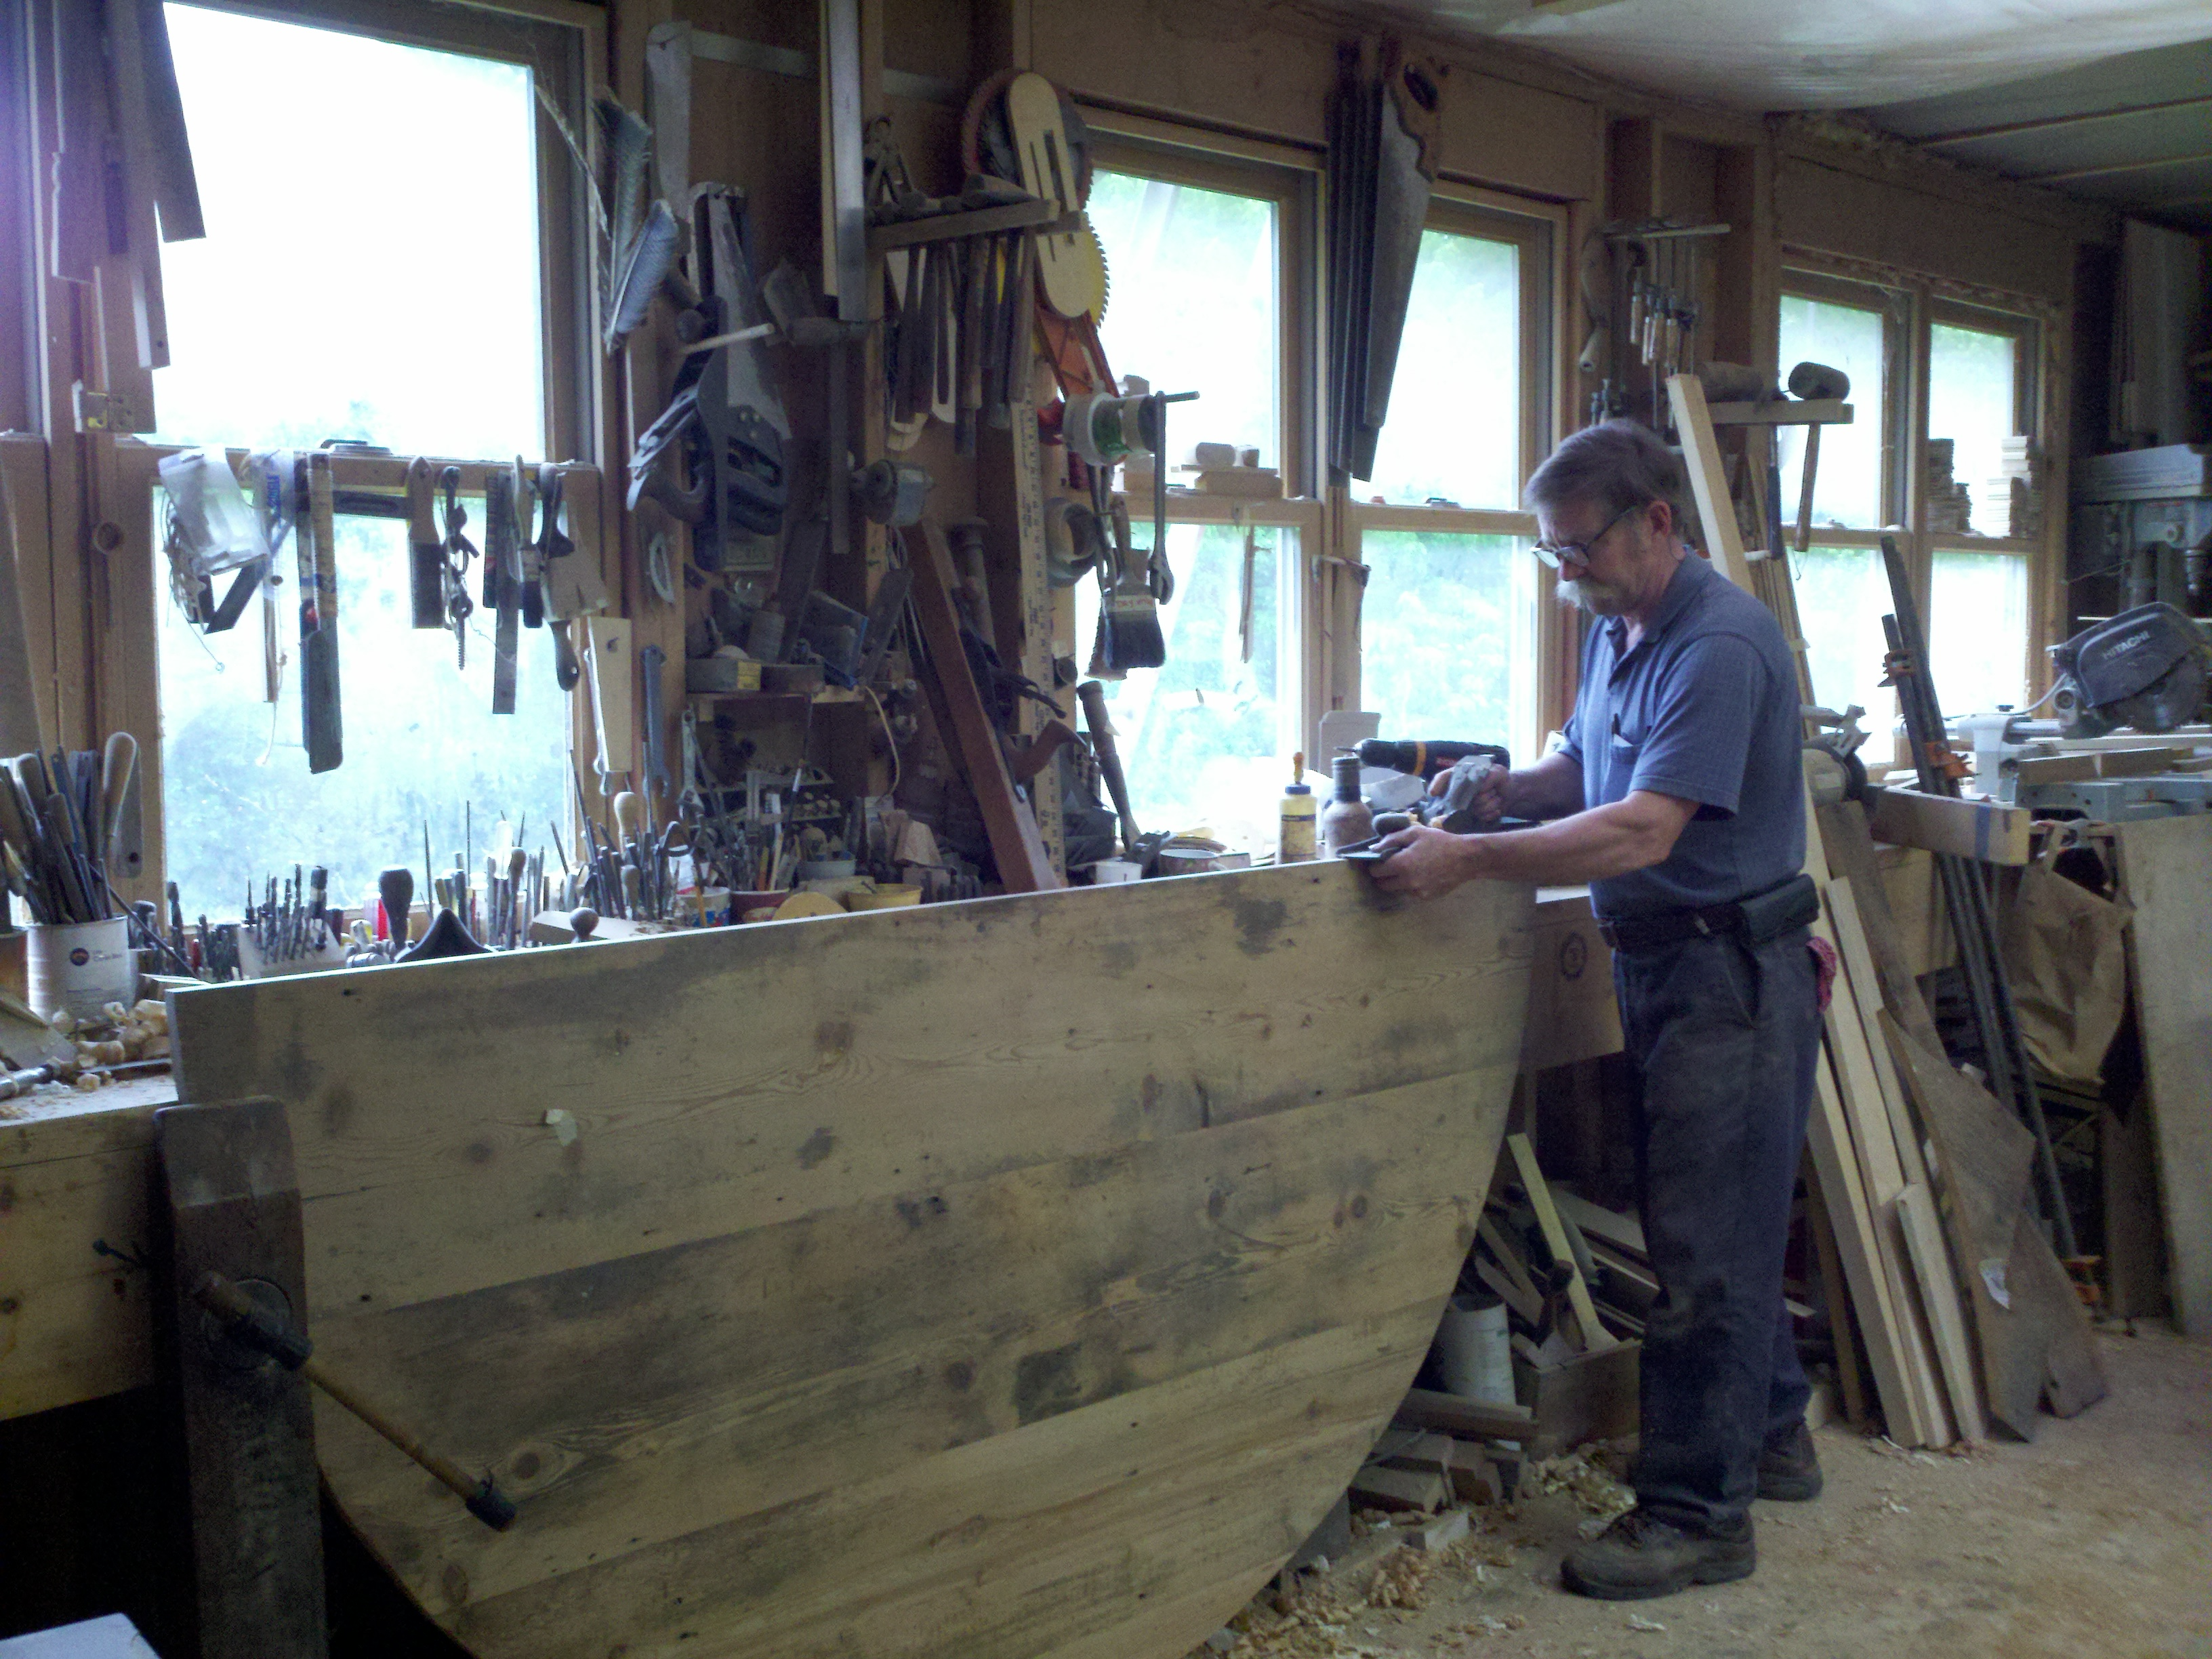 Using a jointing plane